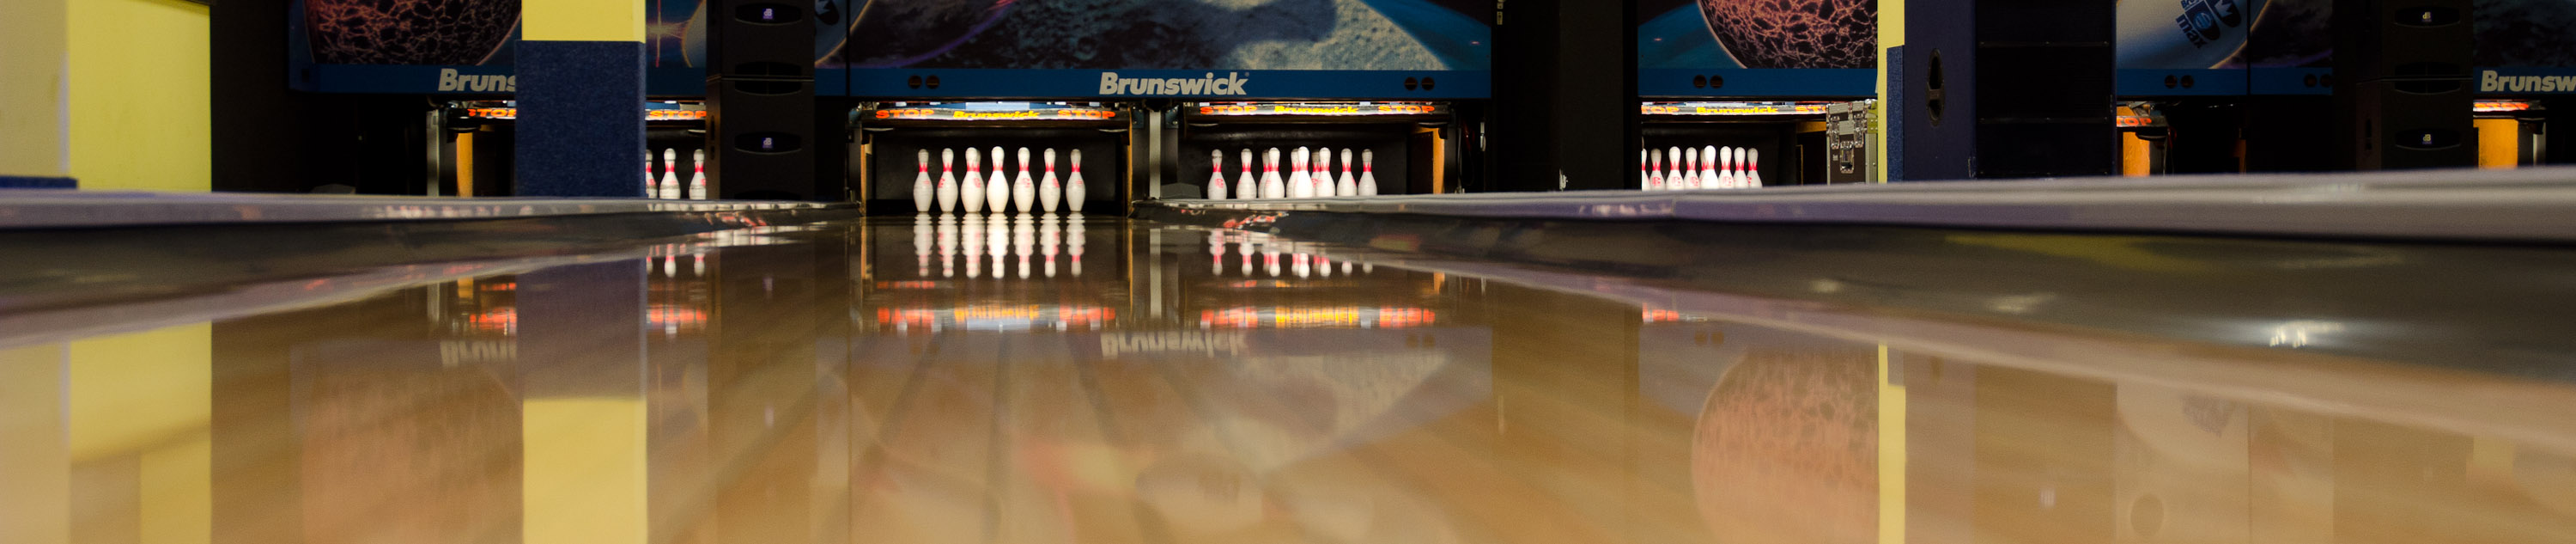 Bowling 1x1 - Bowling Center Bad Honnef - The home of bowling